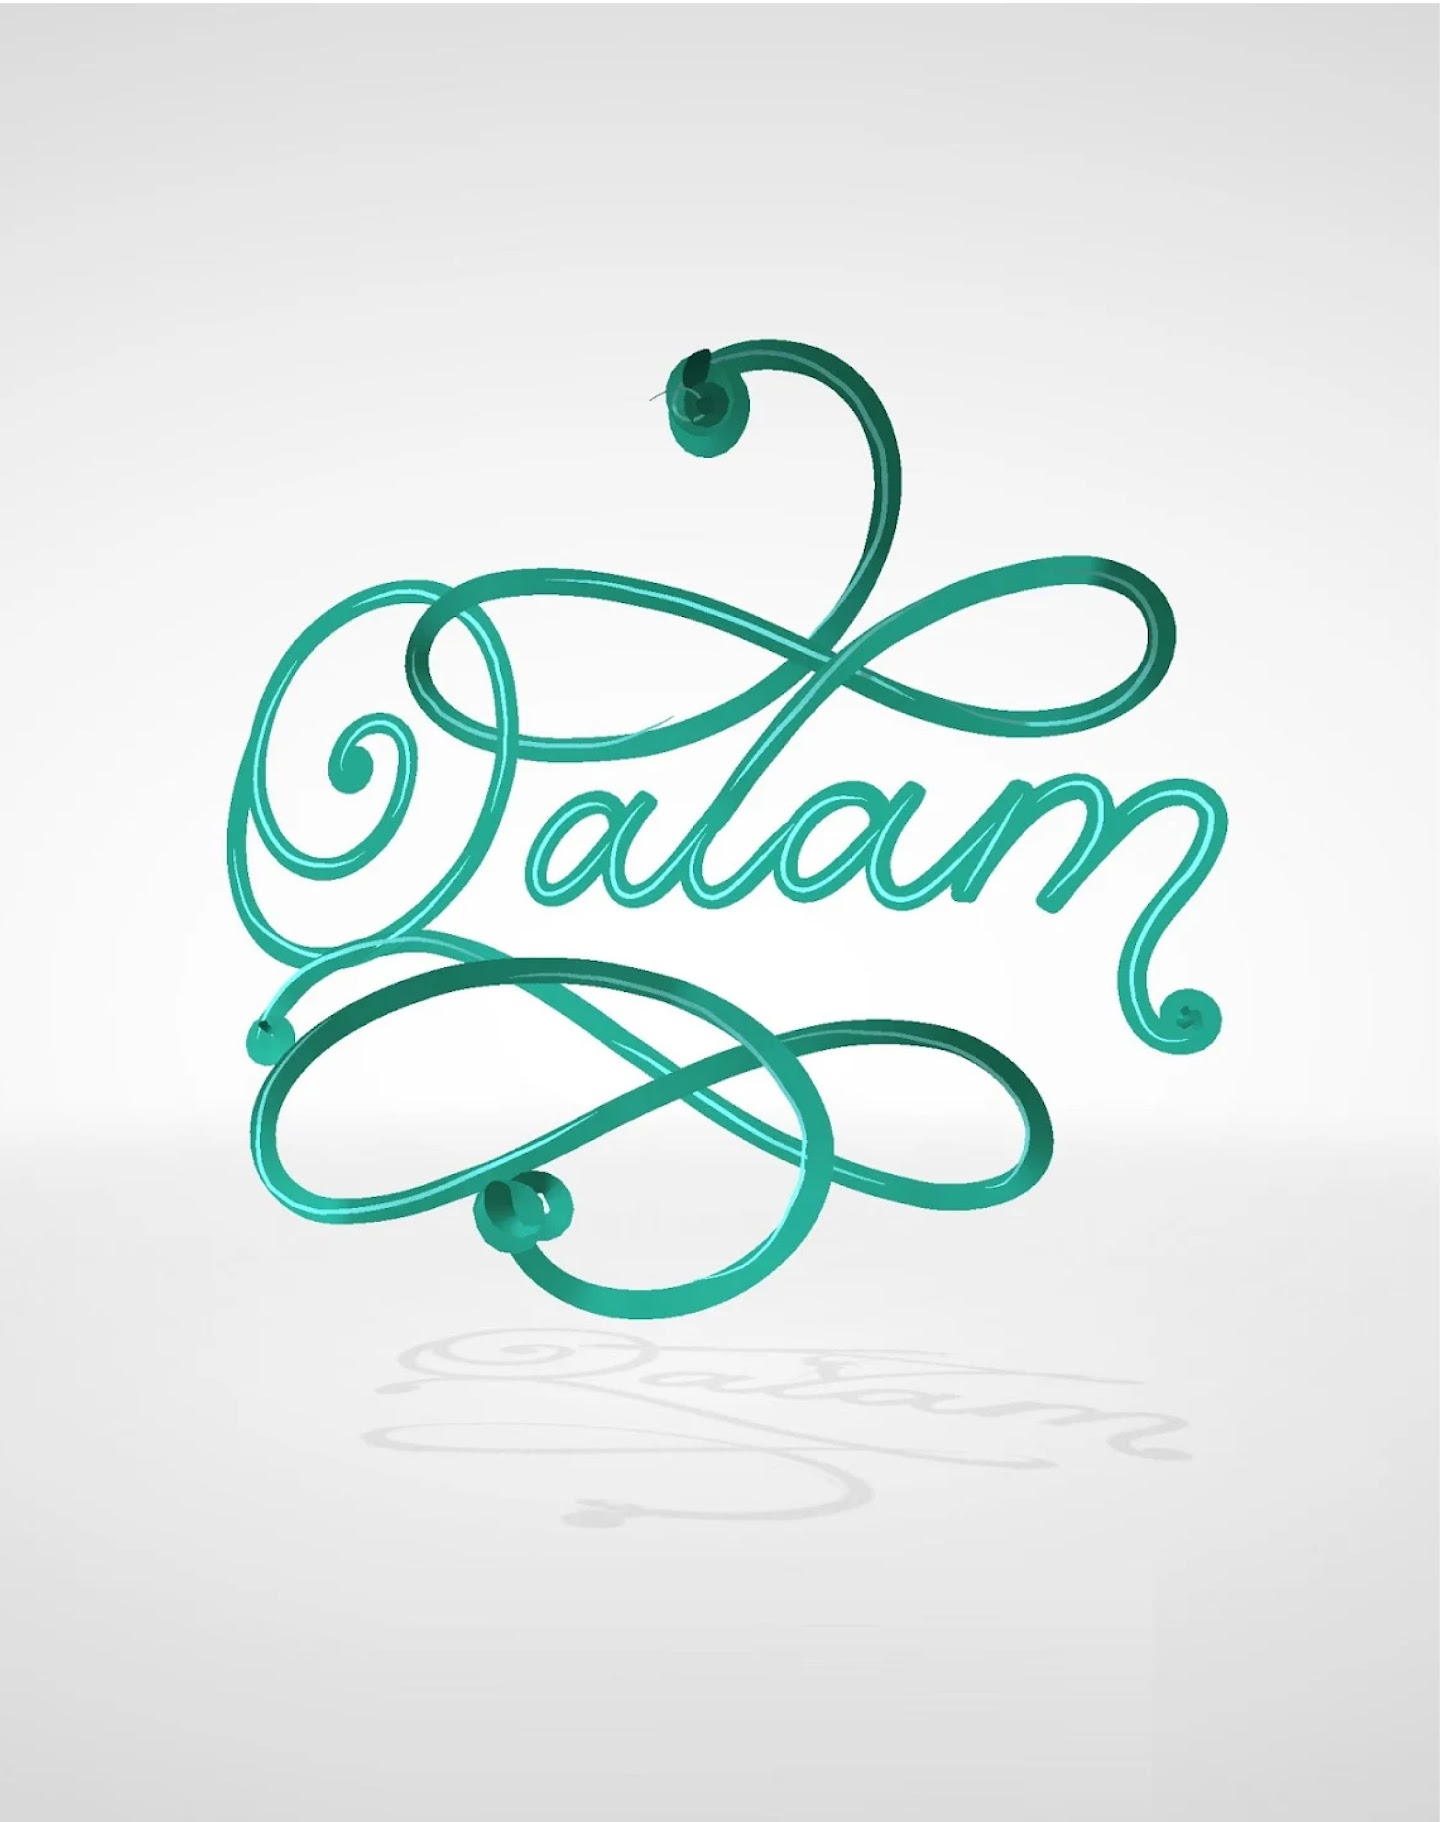 Calligraphy style green Qalam logo created using a Google Tilt Brush